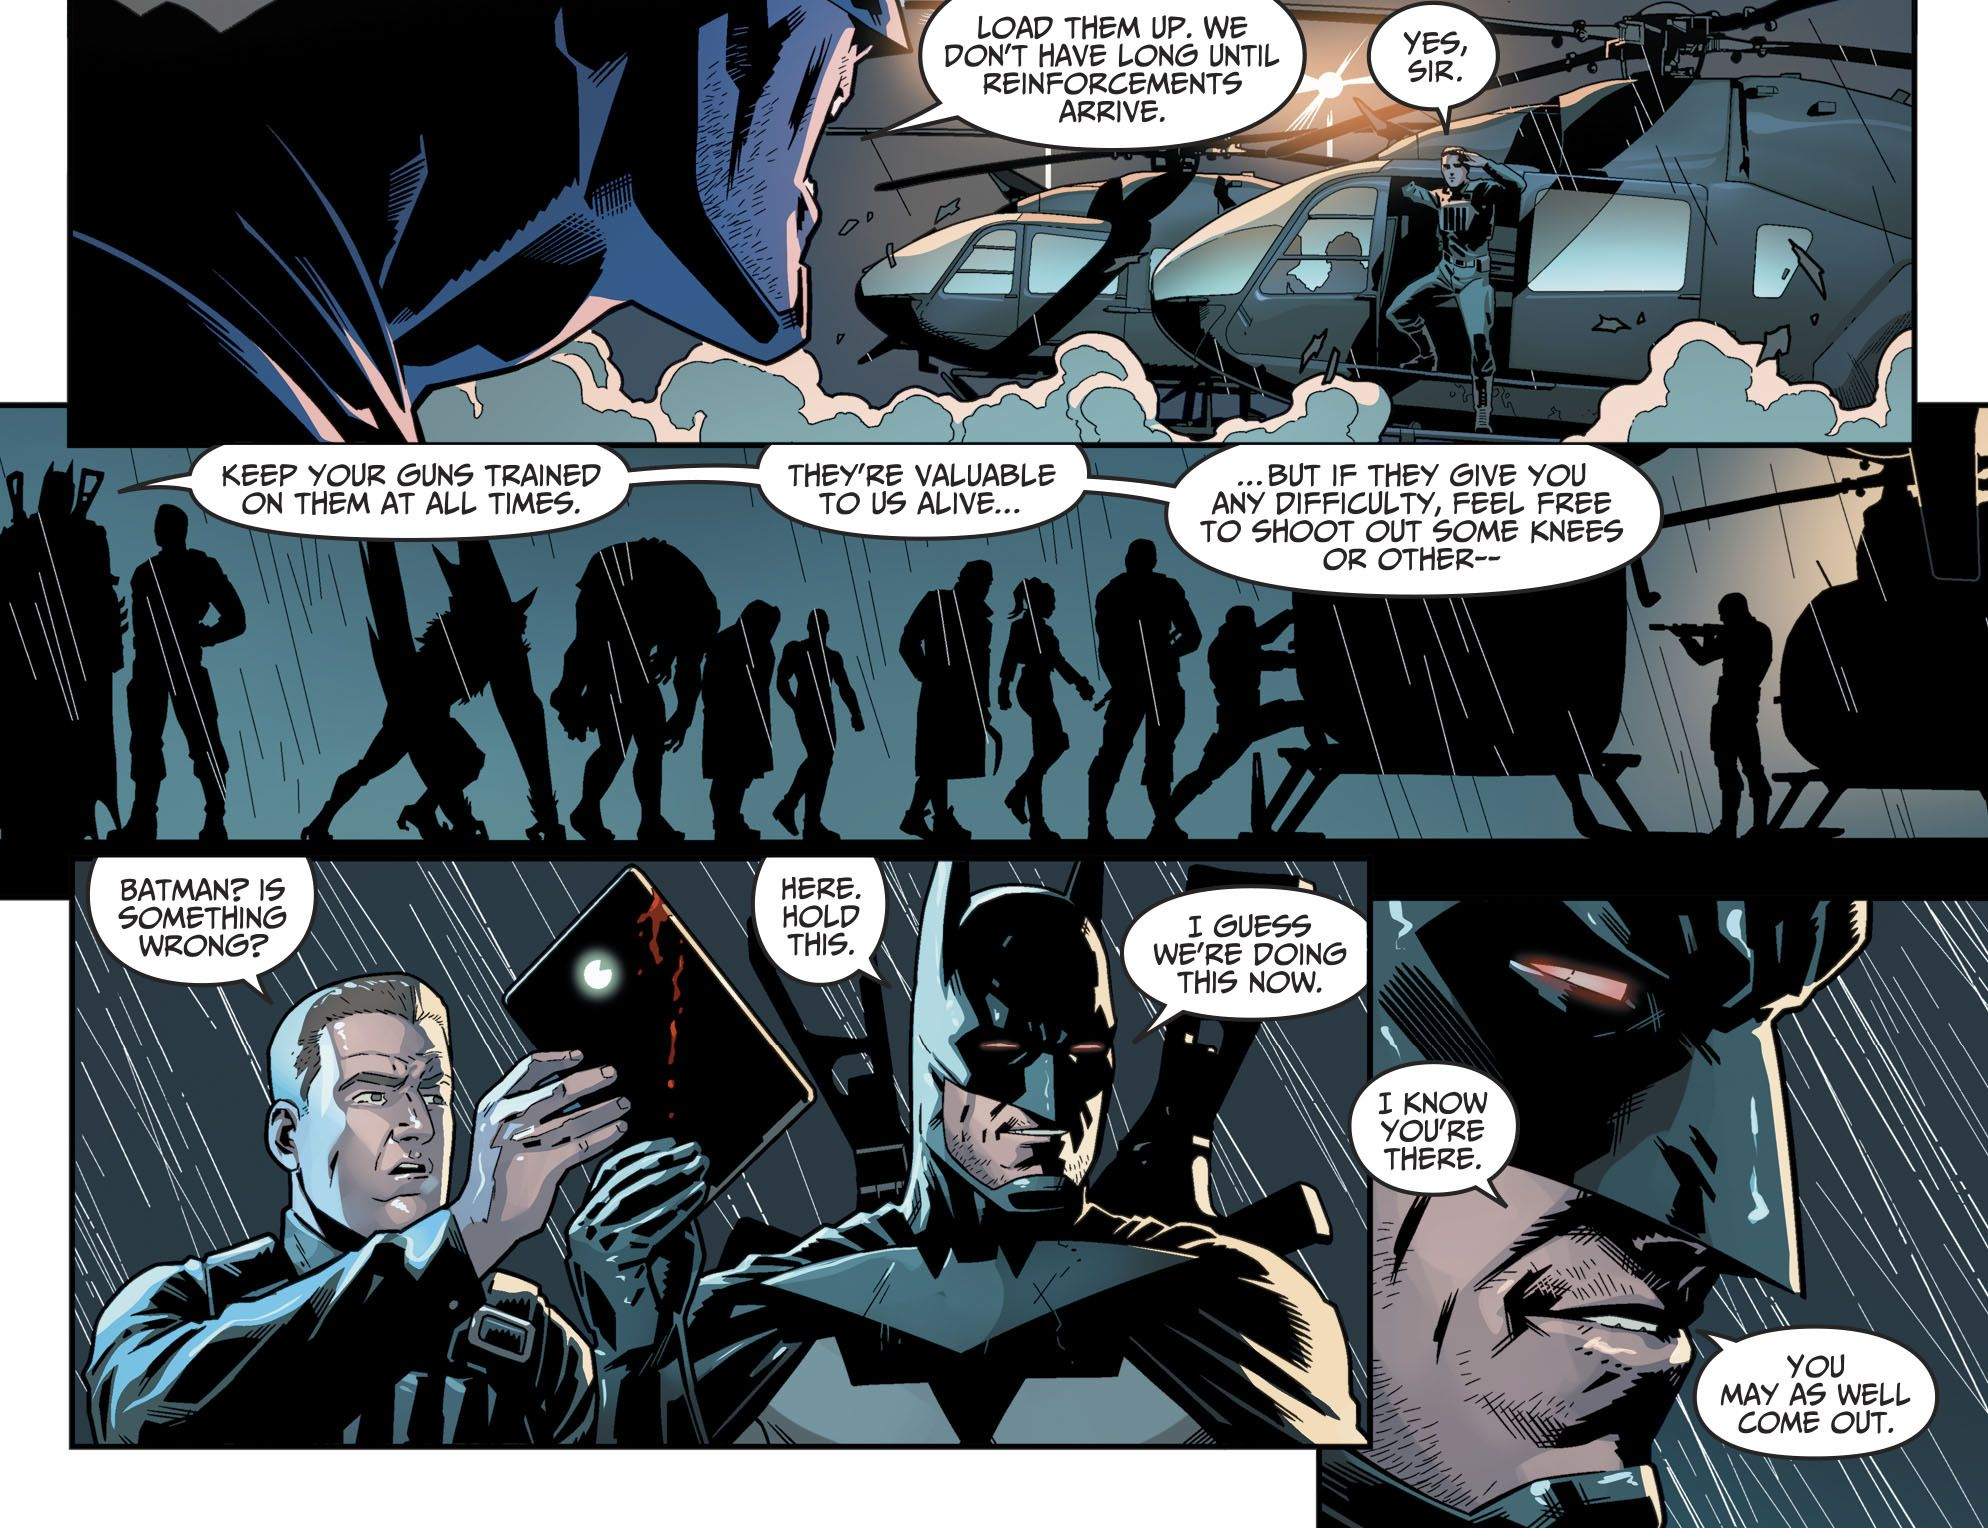 Injustice 2 Issue 3 Read Injustice 2 Issue 3 Comic Online In High Quality Injustice Comics Online Comics